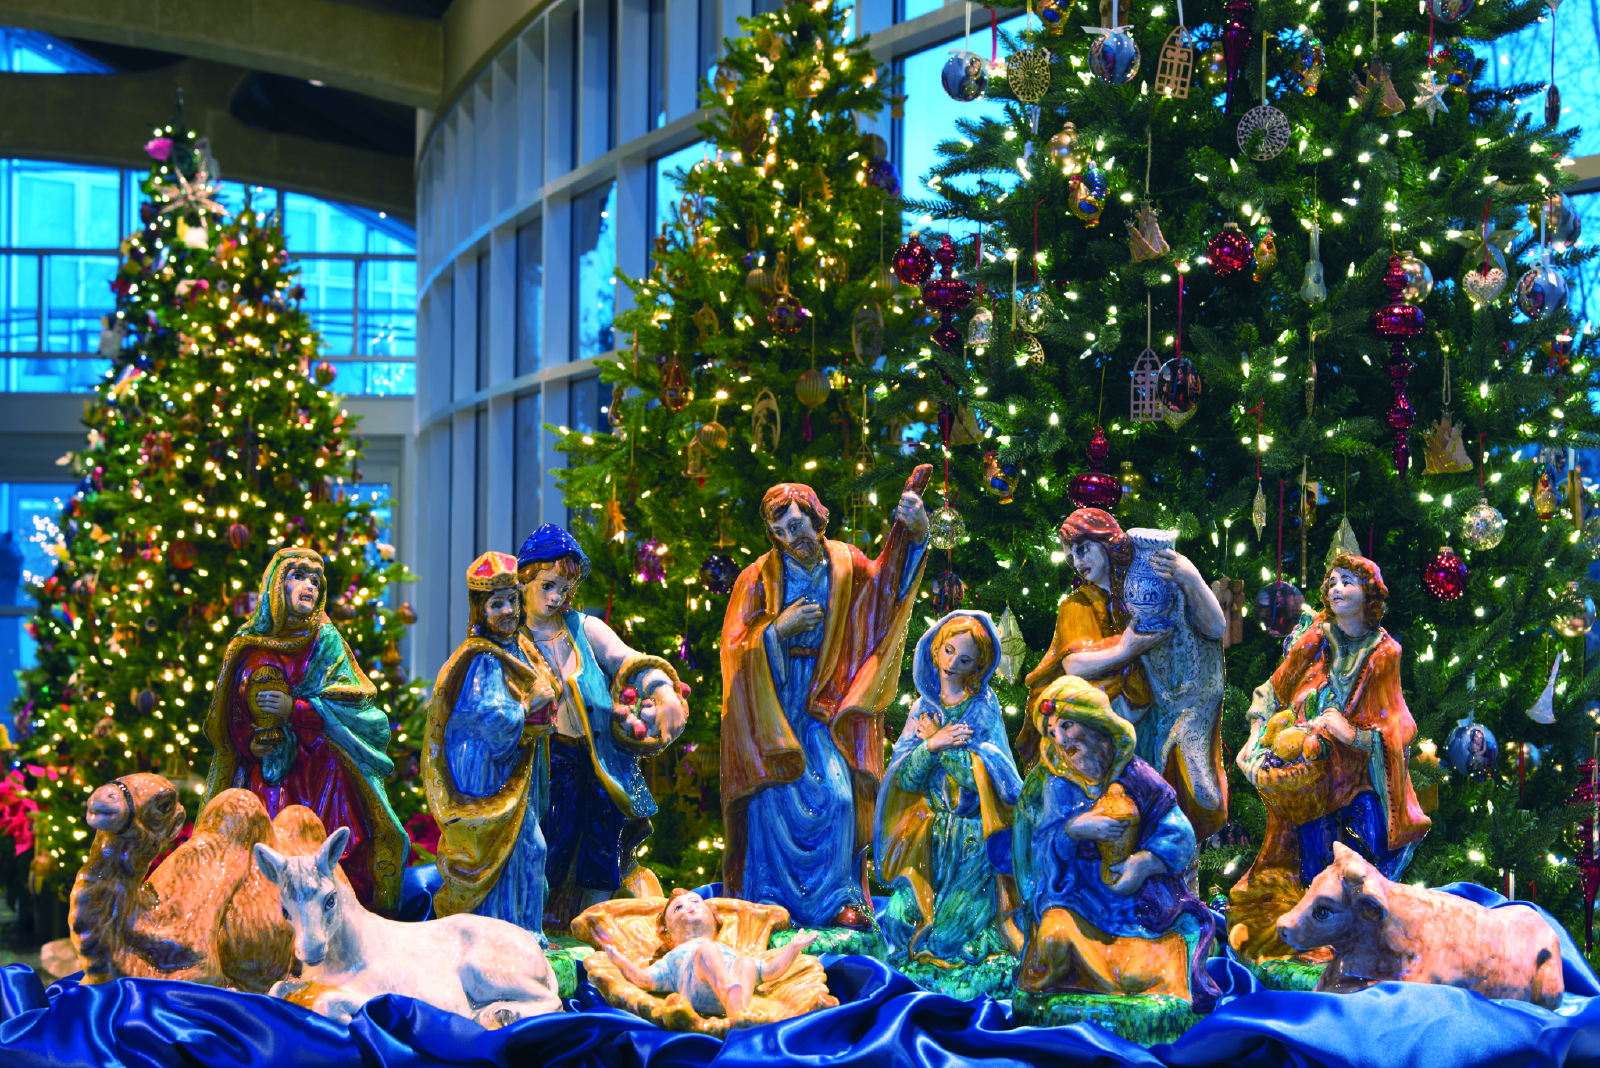 Meijer Christmas Eve Hours.Lights On Meijer Gardens Opens Holiday Traditions Display